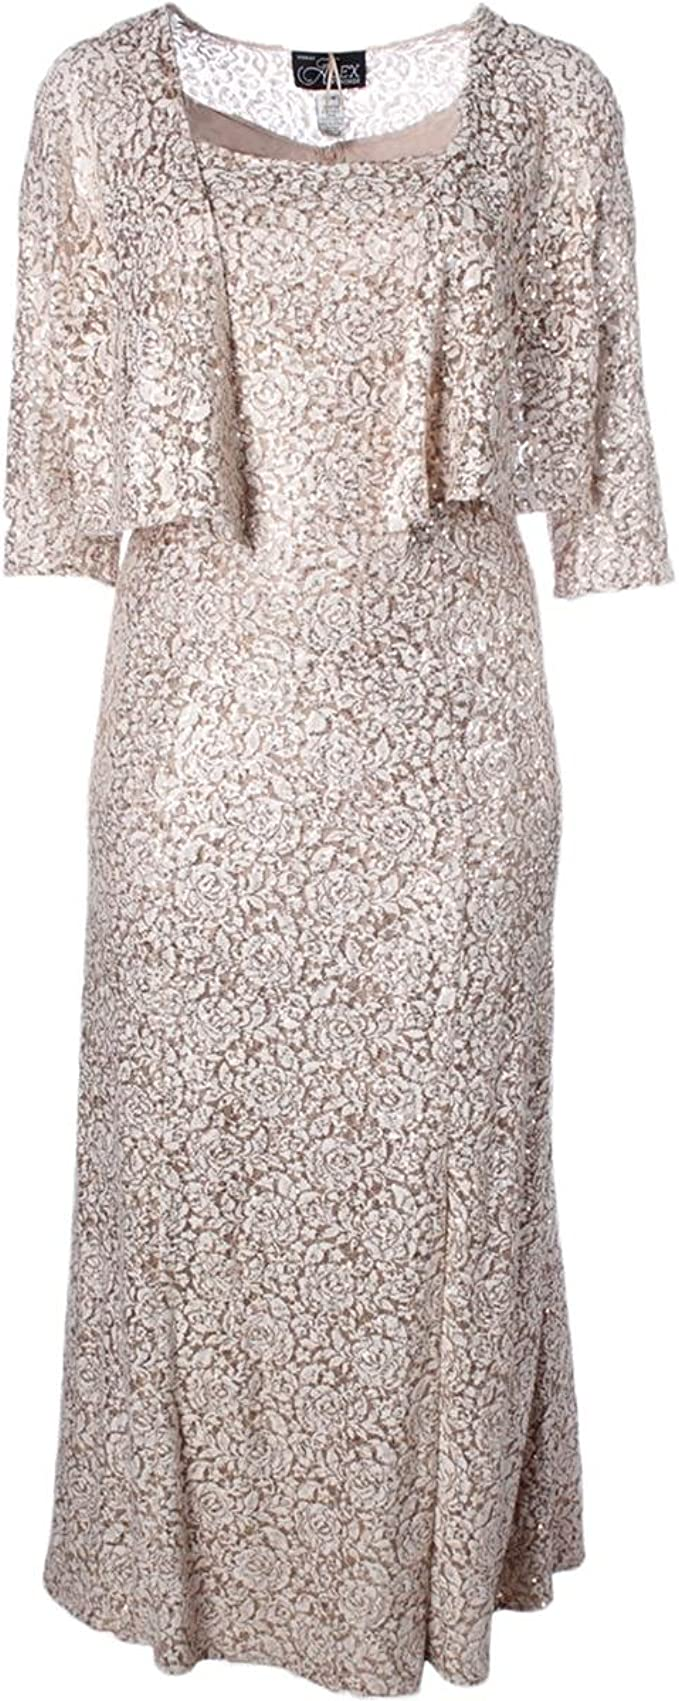 Alex Evenings Women S Plus Size Long Printed A Line Dress With 3 4 Sleeve Ivory 18w At Amazon Women S Clothing Store,Wedding Guest Plus Size Evening Dresses South Africa